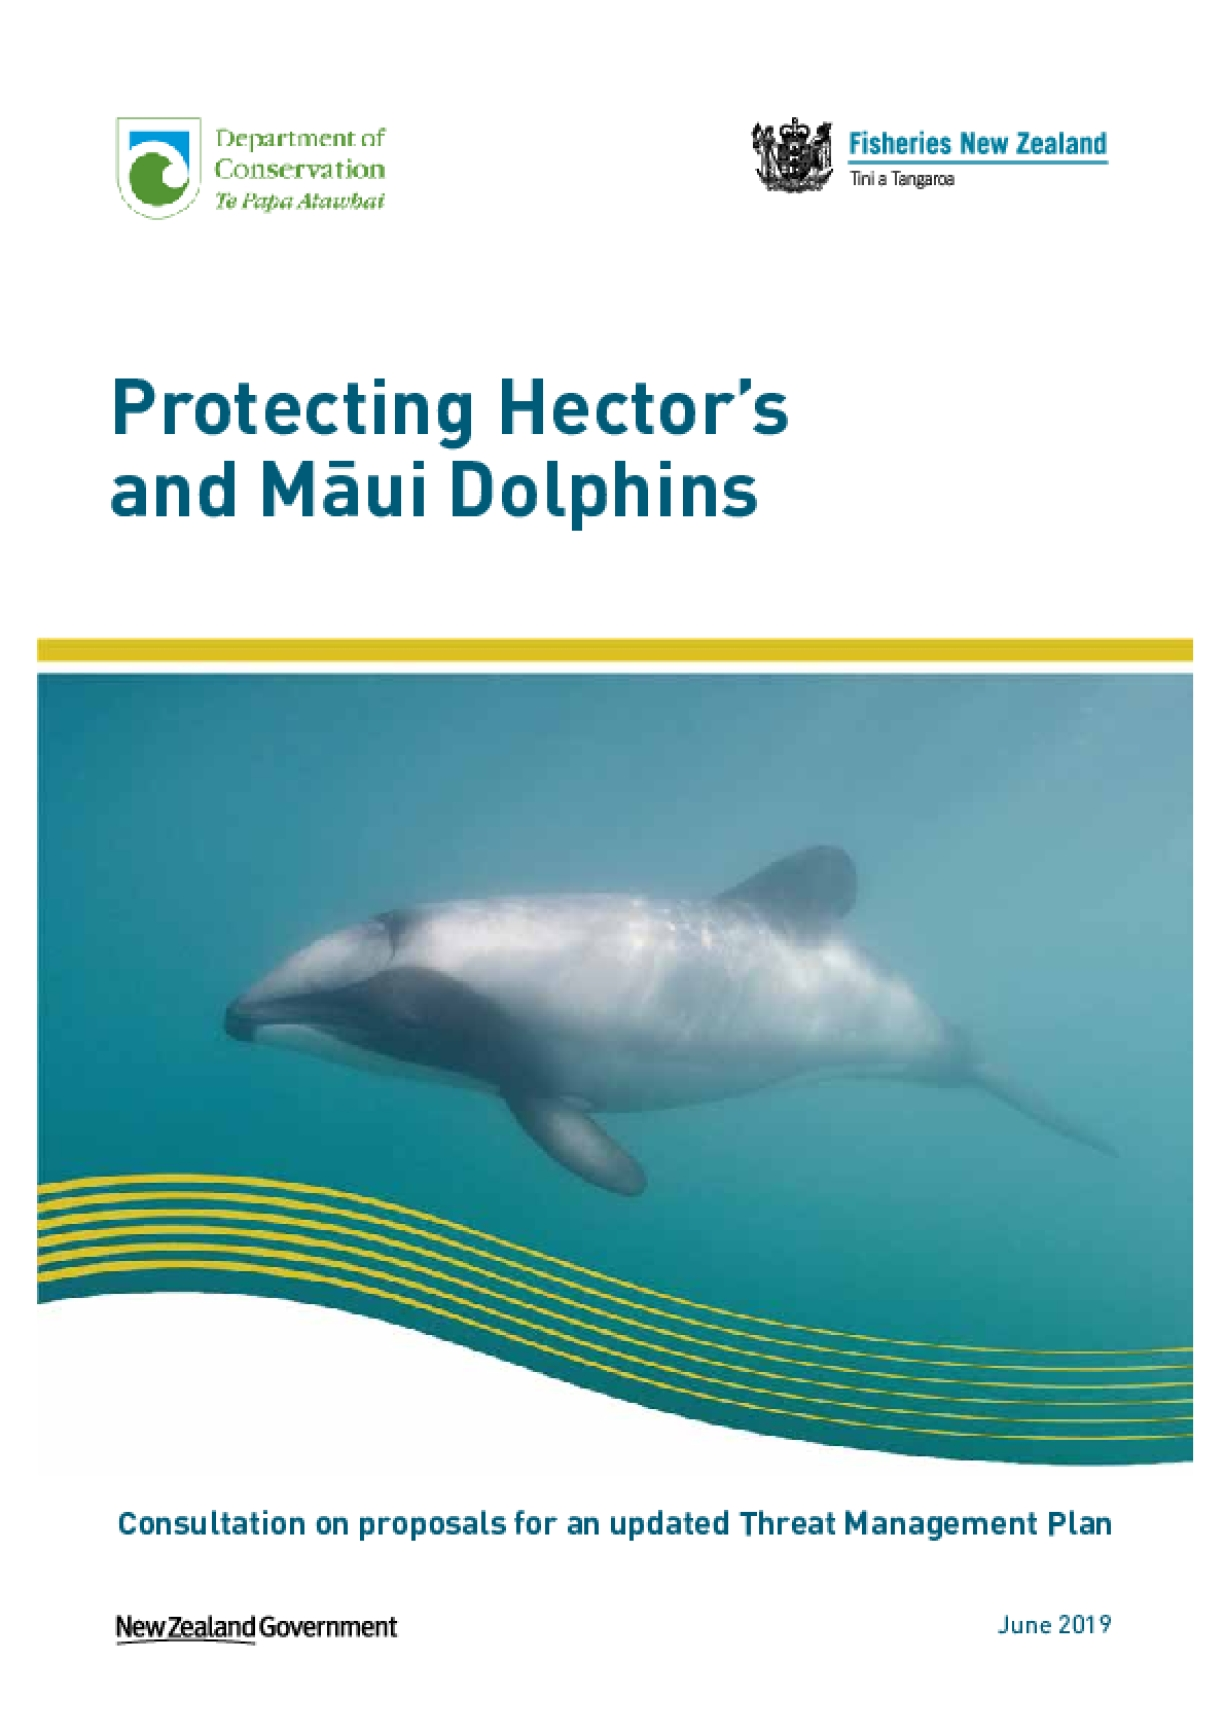 Protecting Hector's and Māui Dolphins